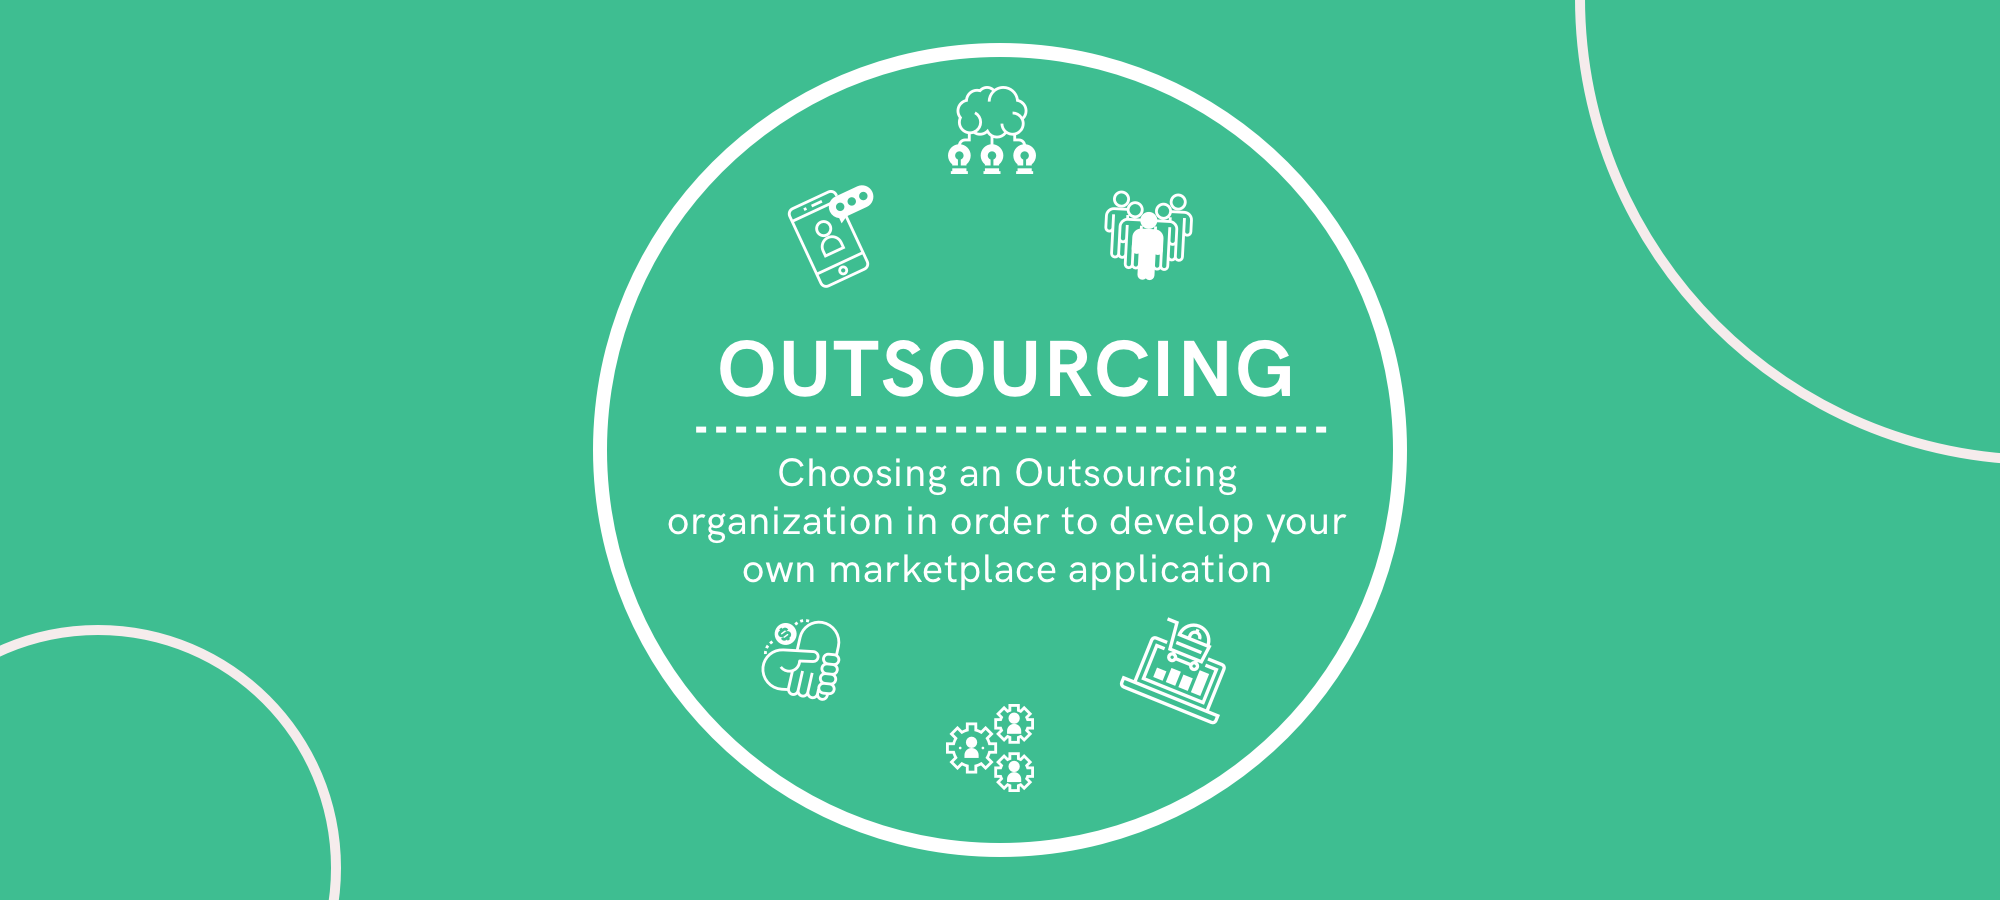 Illustration Your Choice of Outsourcing organization in order to develop your own marketplace application.